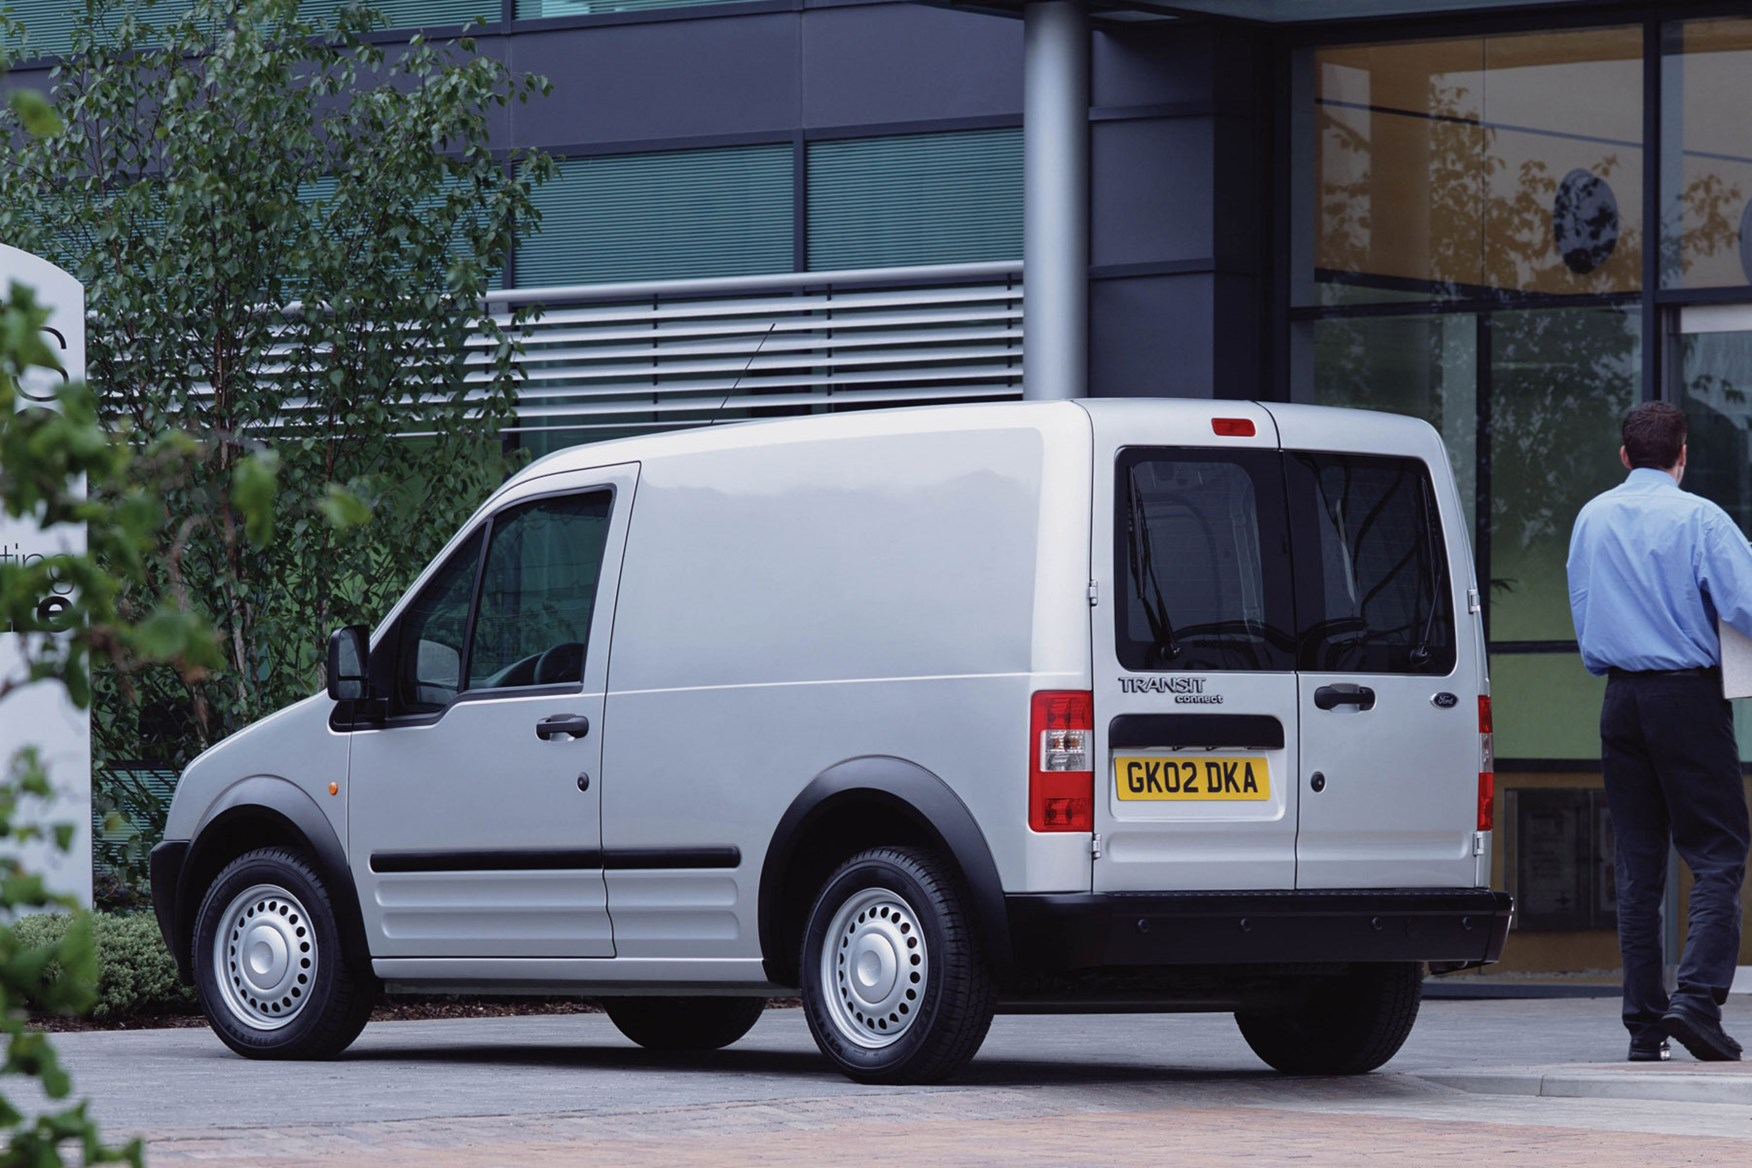 86bda5b1c1 ... Ford Transit Connect (2002-2013) rear view high roof ...